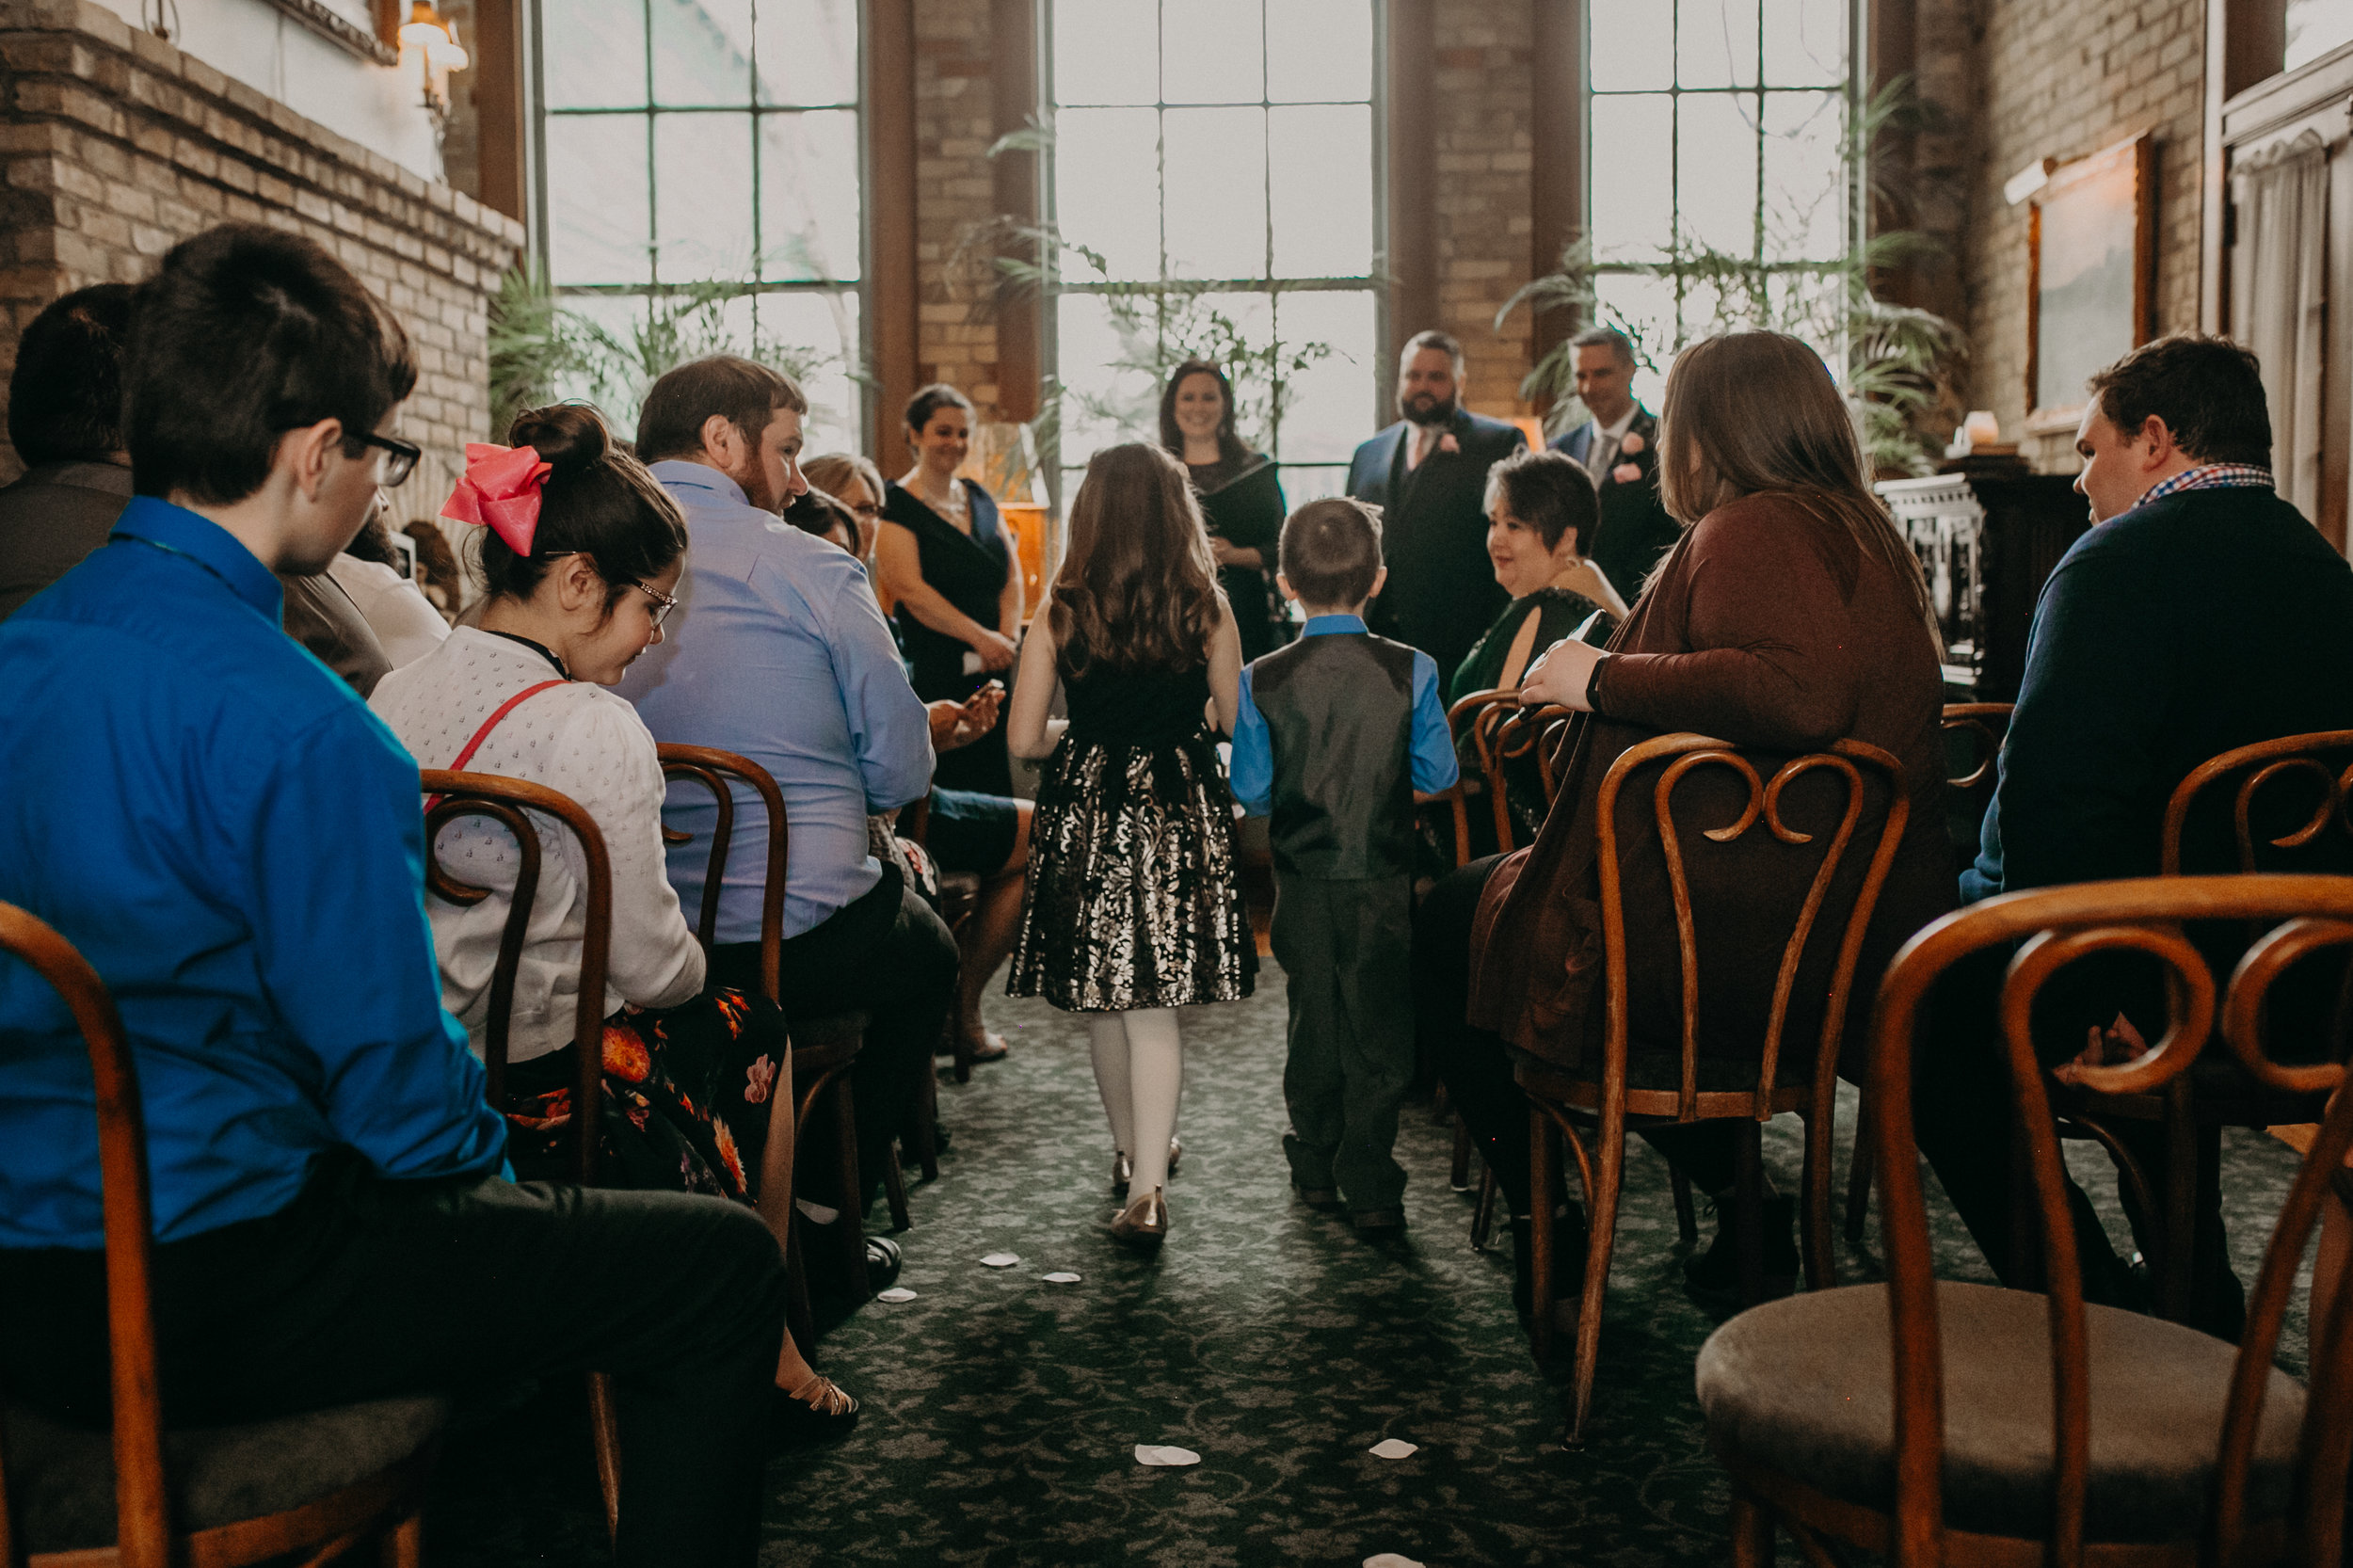 Intimate_Wedding_St_Paul_MN_WA_Frost_Sweeneys_Andrea_Wagner_Photography (41 of 99).jpg